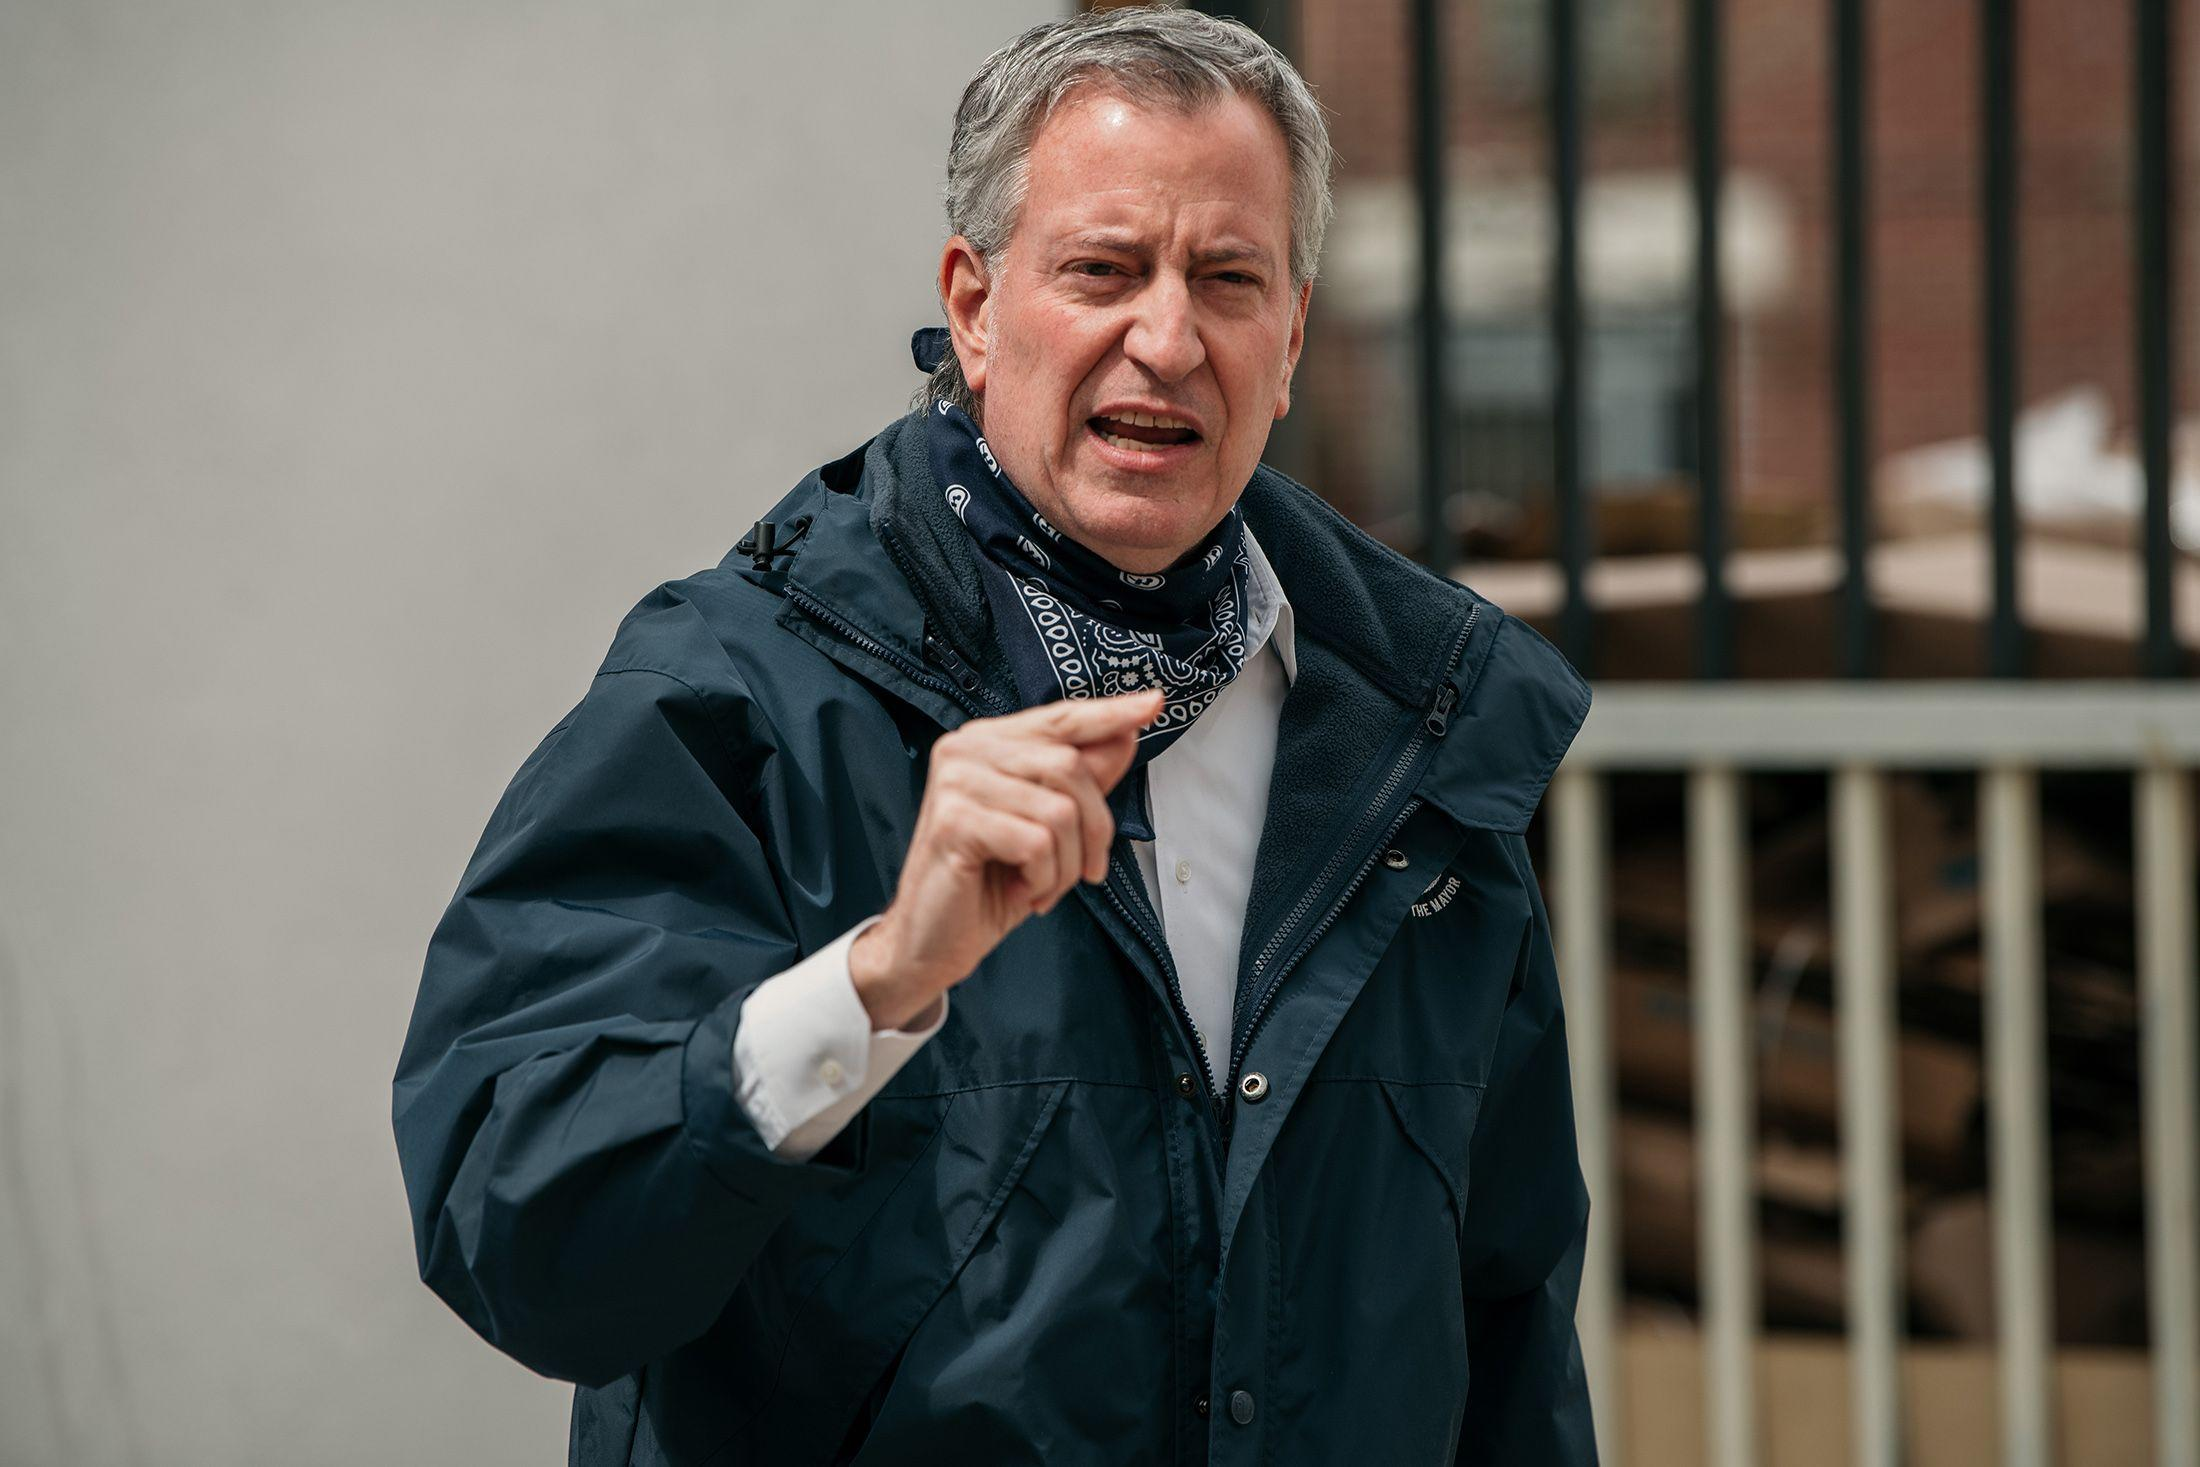 NYC Mayor Cuts Costs, Taps Reserves After $7 Billion Hit